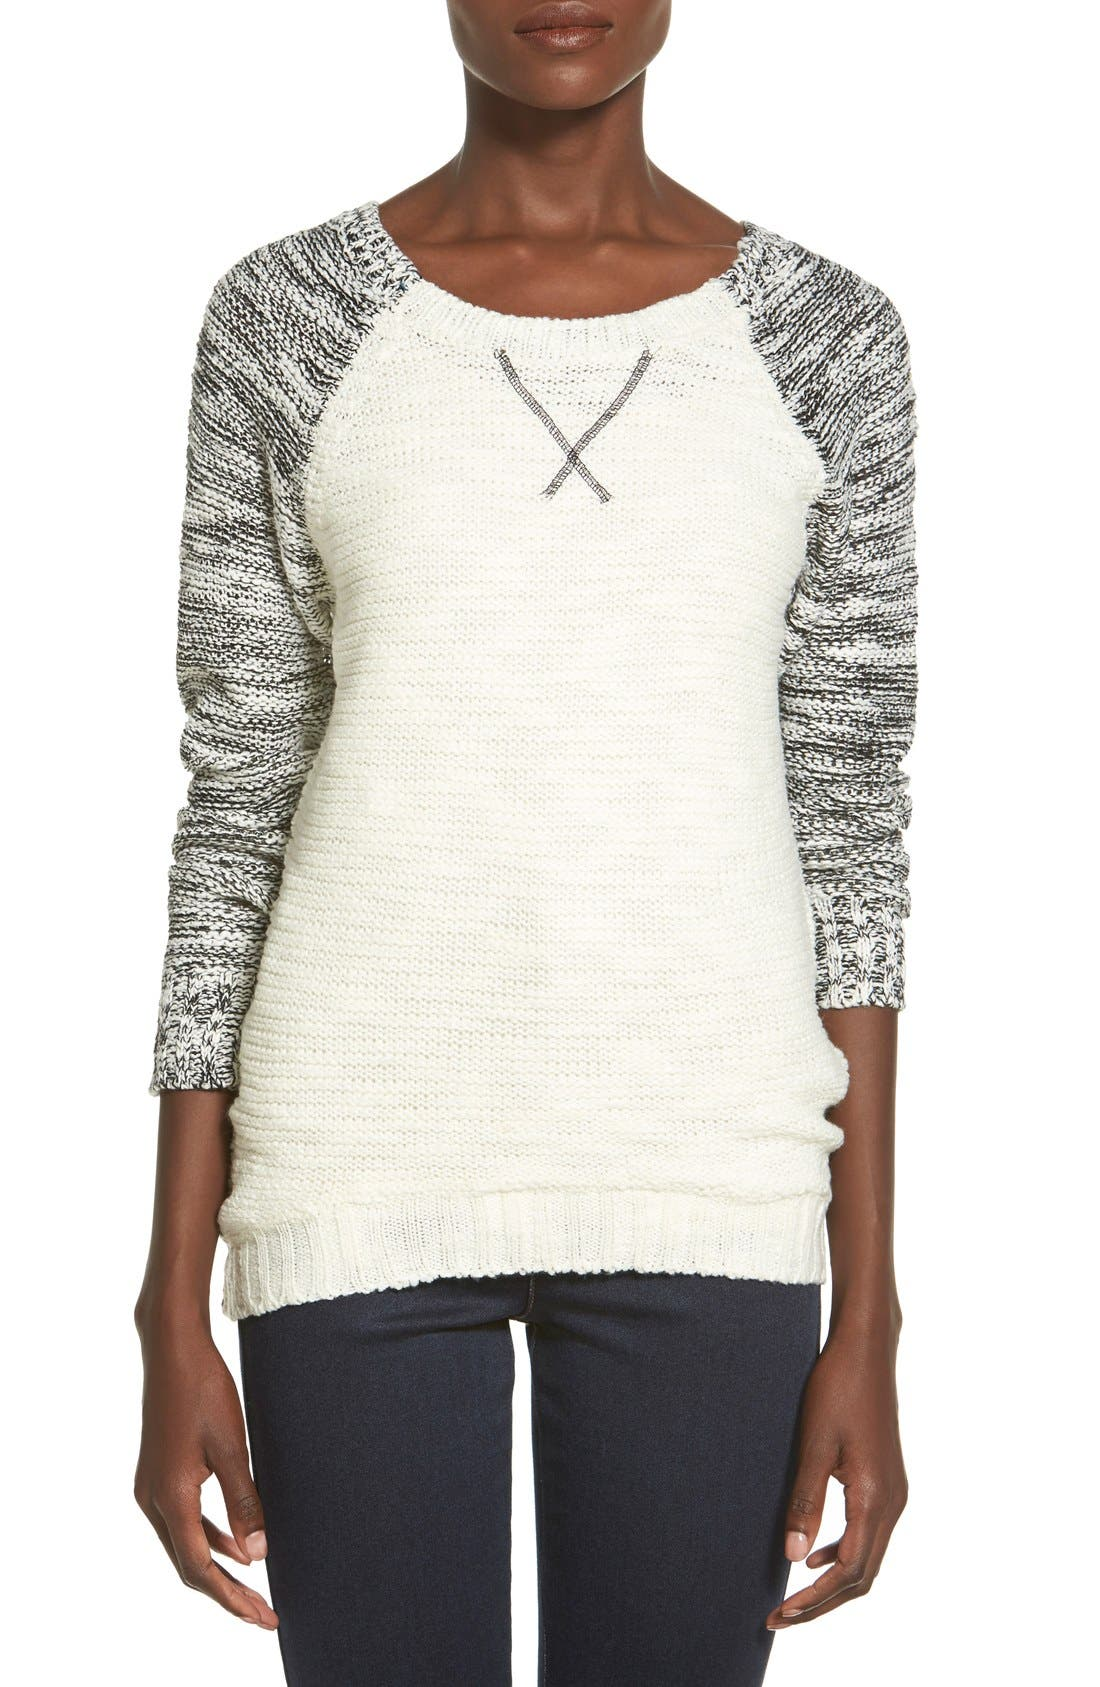 Alternate Image 1 Selected - Derek Heart Marled Colorblock Raglan Sweater